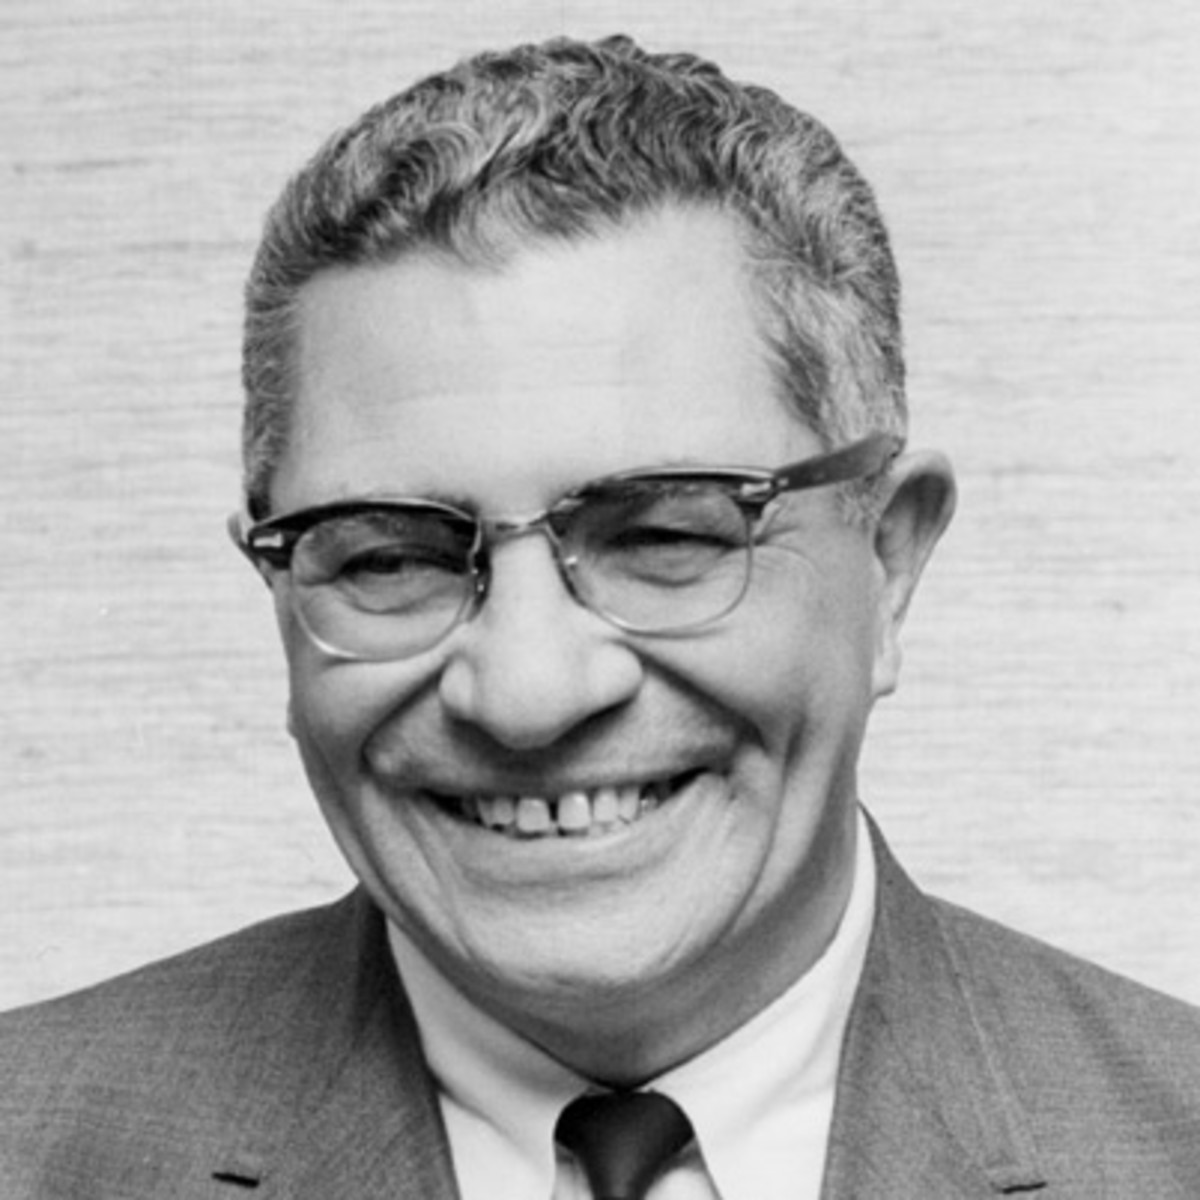 the life and early career of vincent lombardi Vince lombardi topic vincent thomas lombardi (june 11, 1913 – september 3, 1970) life and career early life lombardi grew up in ocean city.